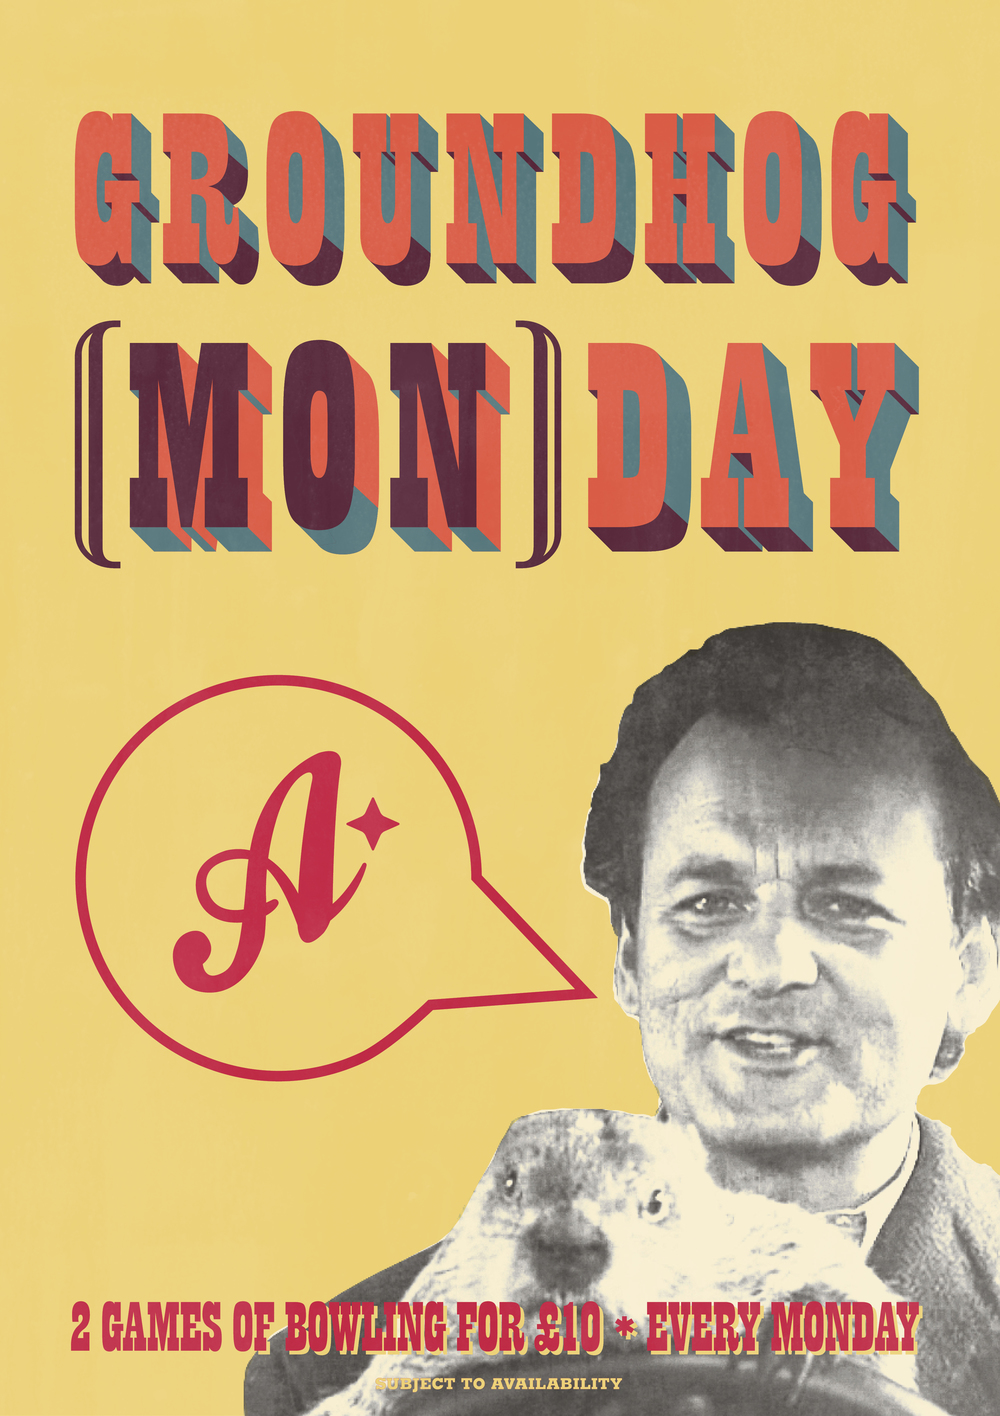 131129_Groundhog Monday Poster Extension A4.jpg